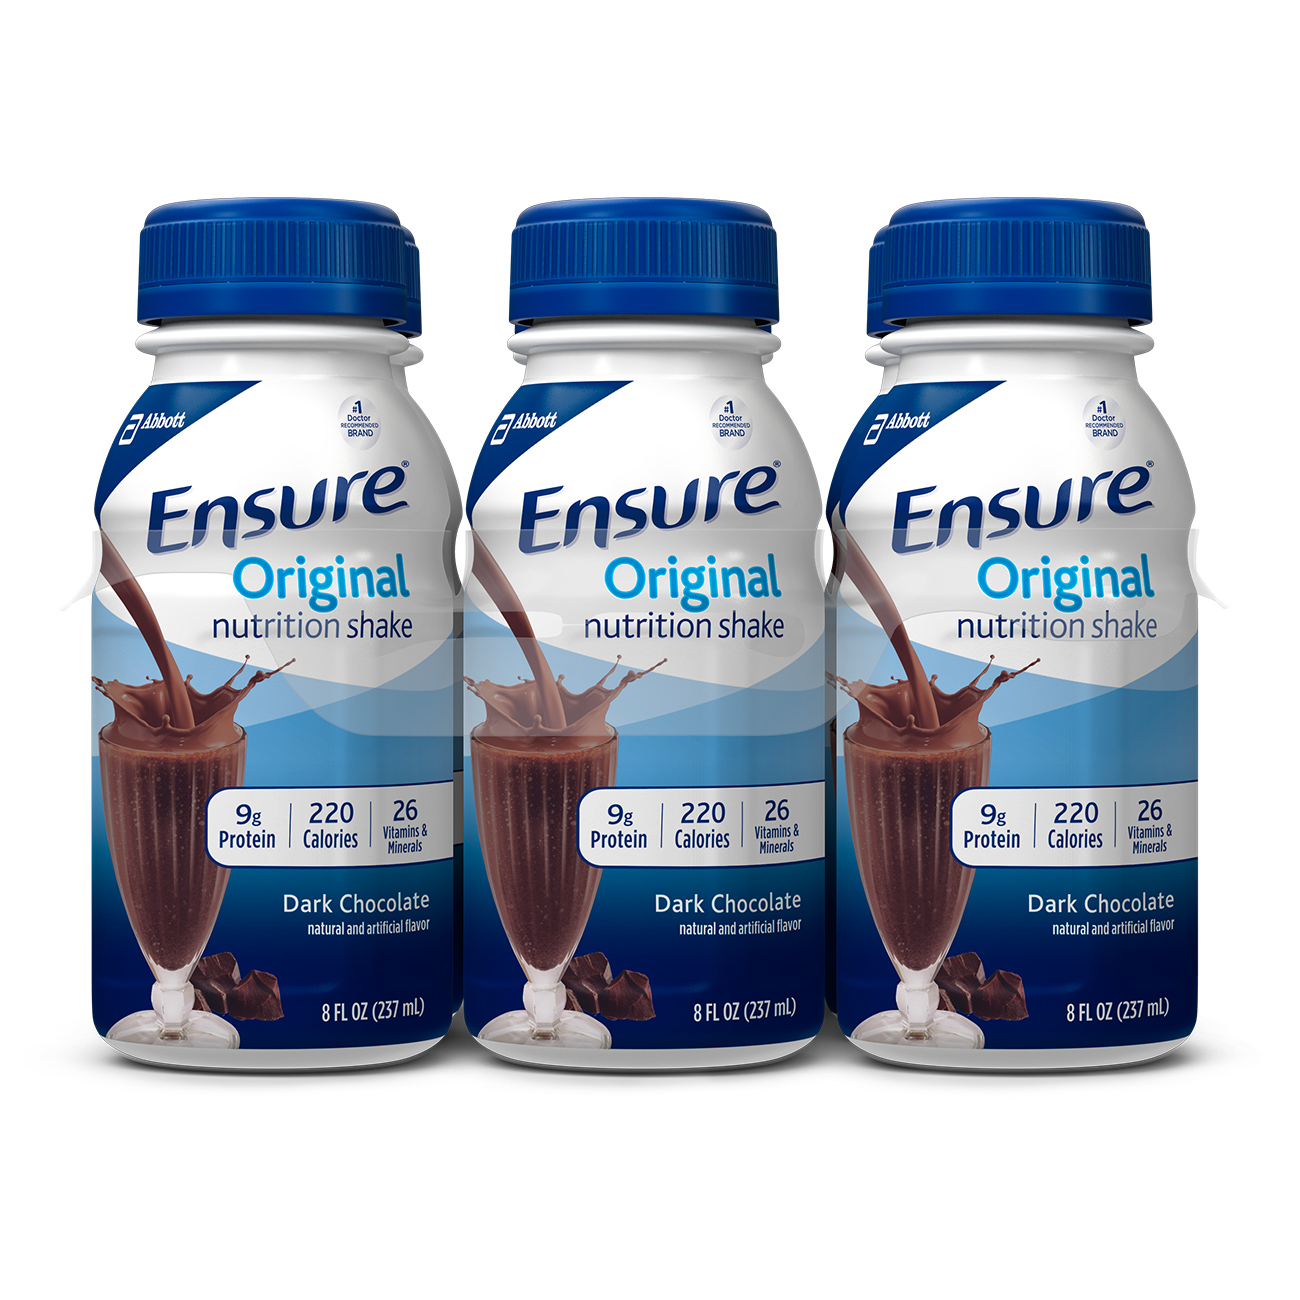 Ensure Original Nutrition Shake with 9 grams of protein, Meal Replacement Shakes, Dark Chocolate, 8 fl oz, 6 Count